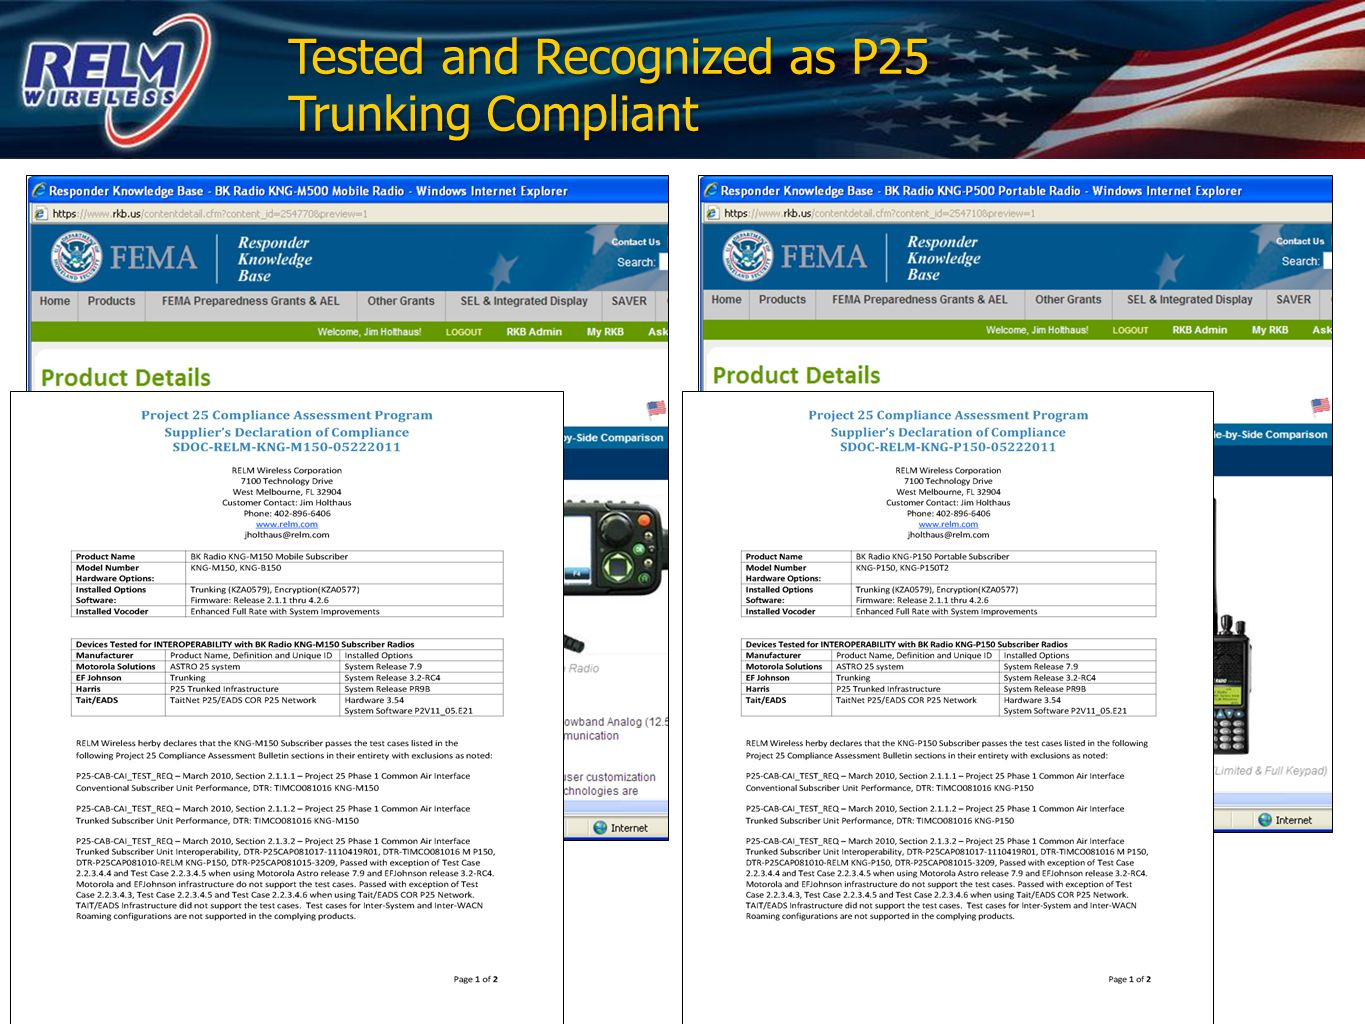 Tested and Recognized as P25 Trunking Compliant